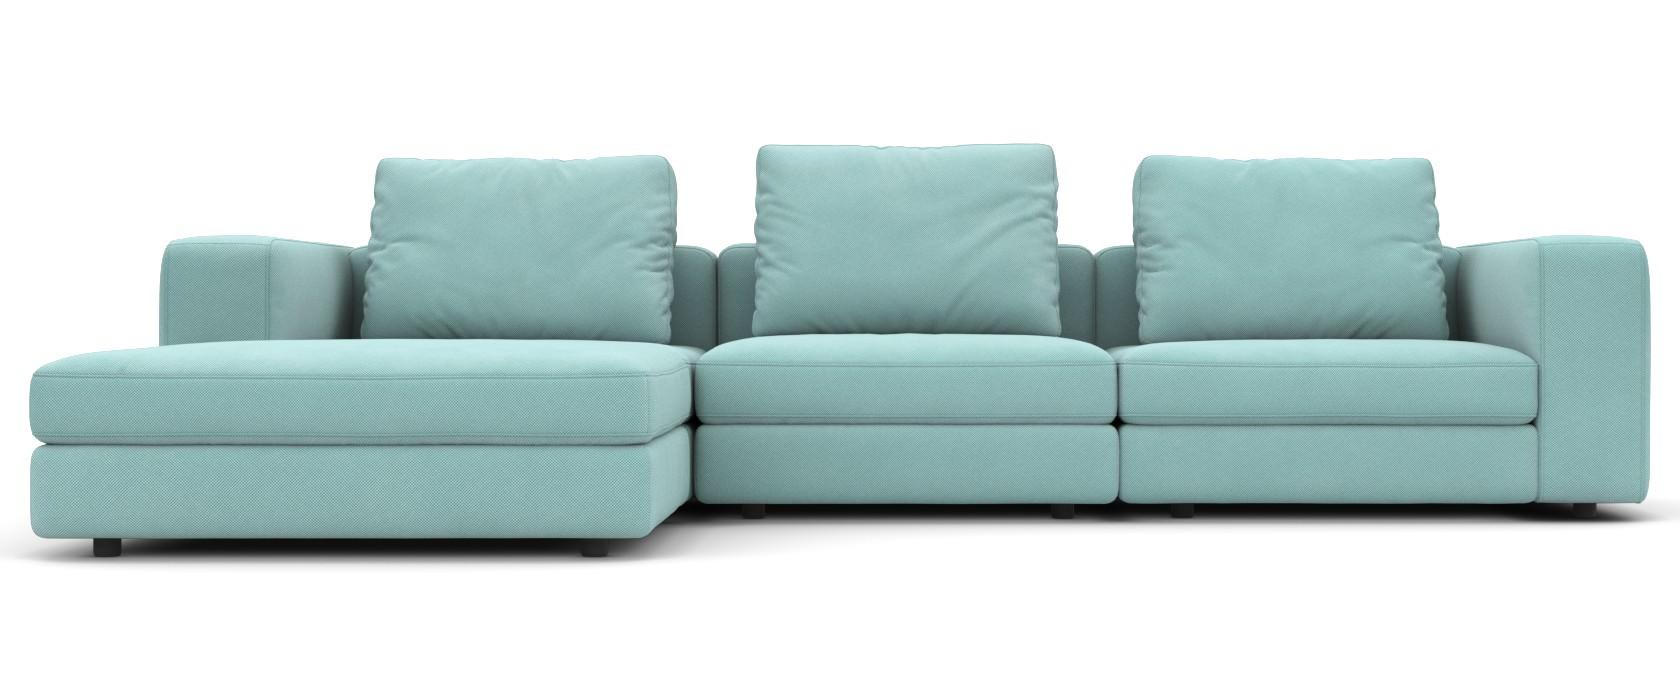 Sofa mit Chaiselongue Domino